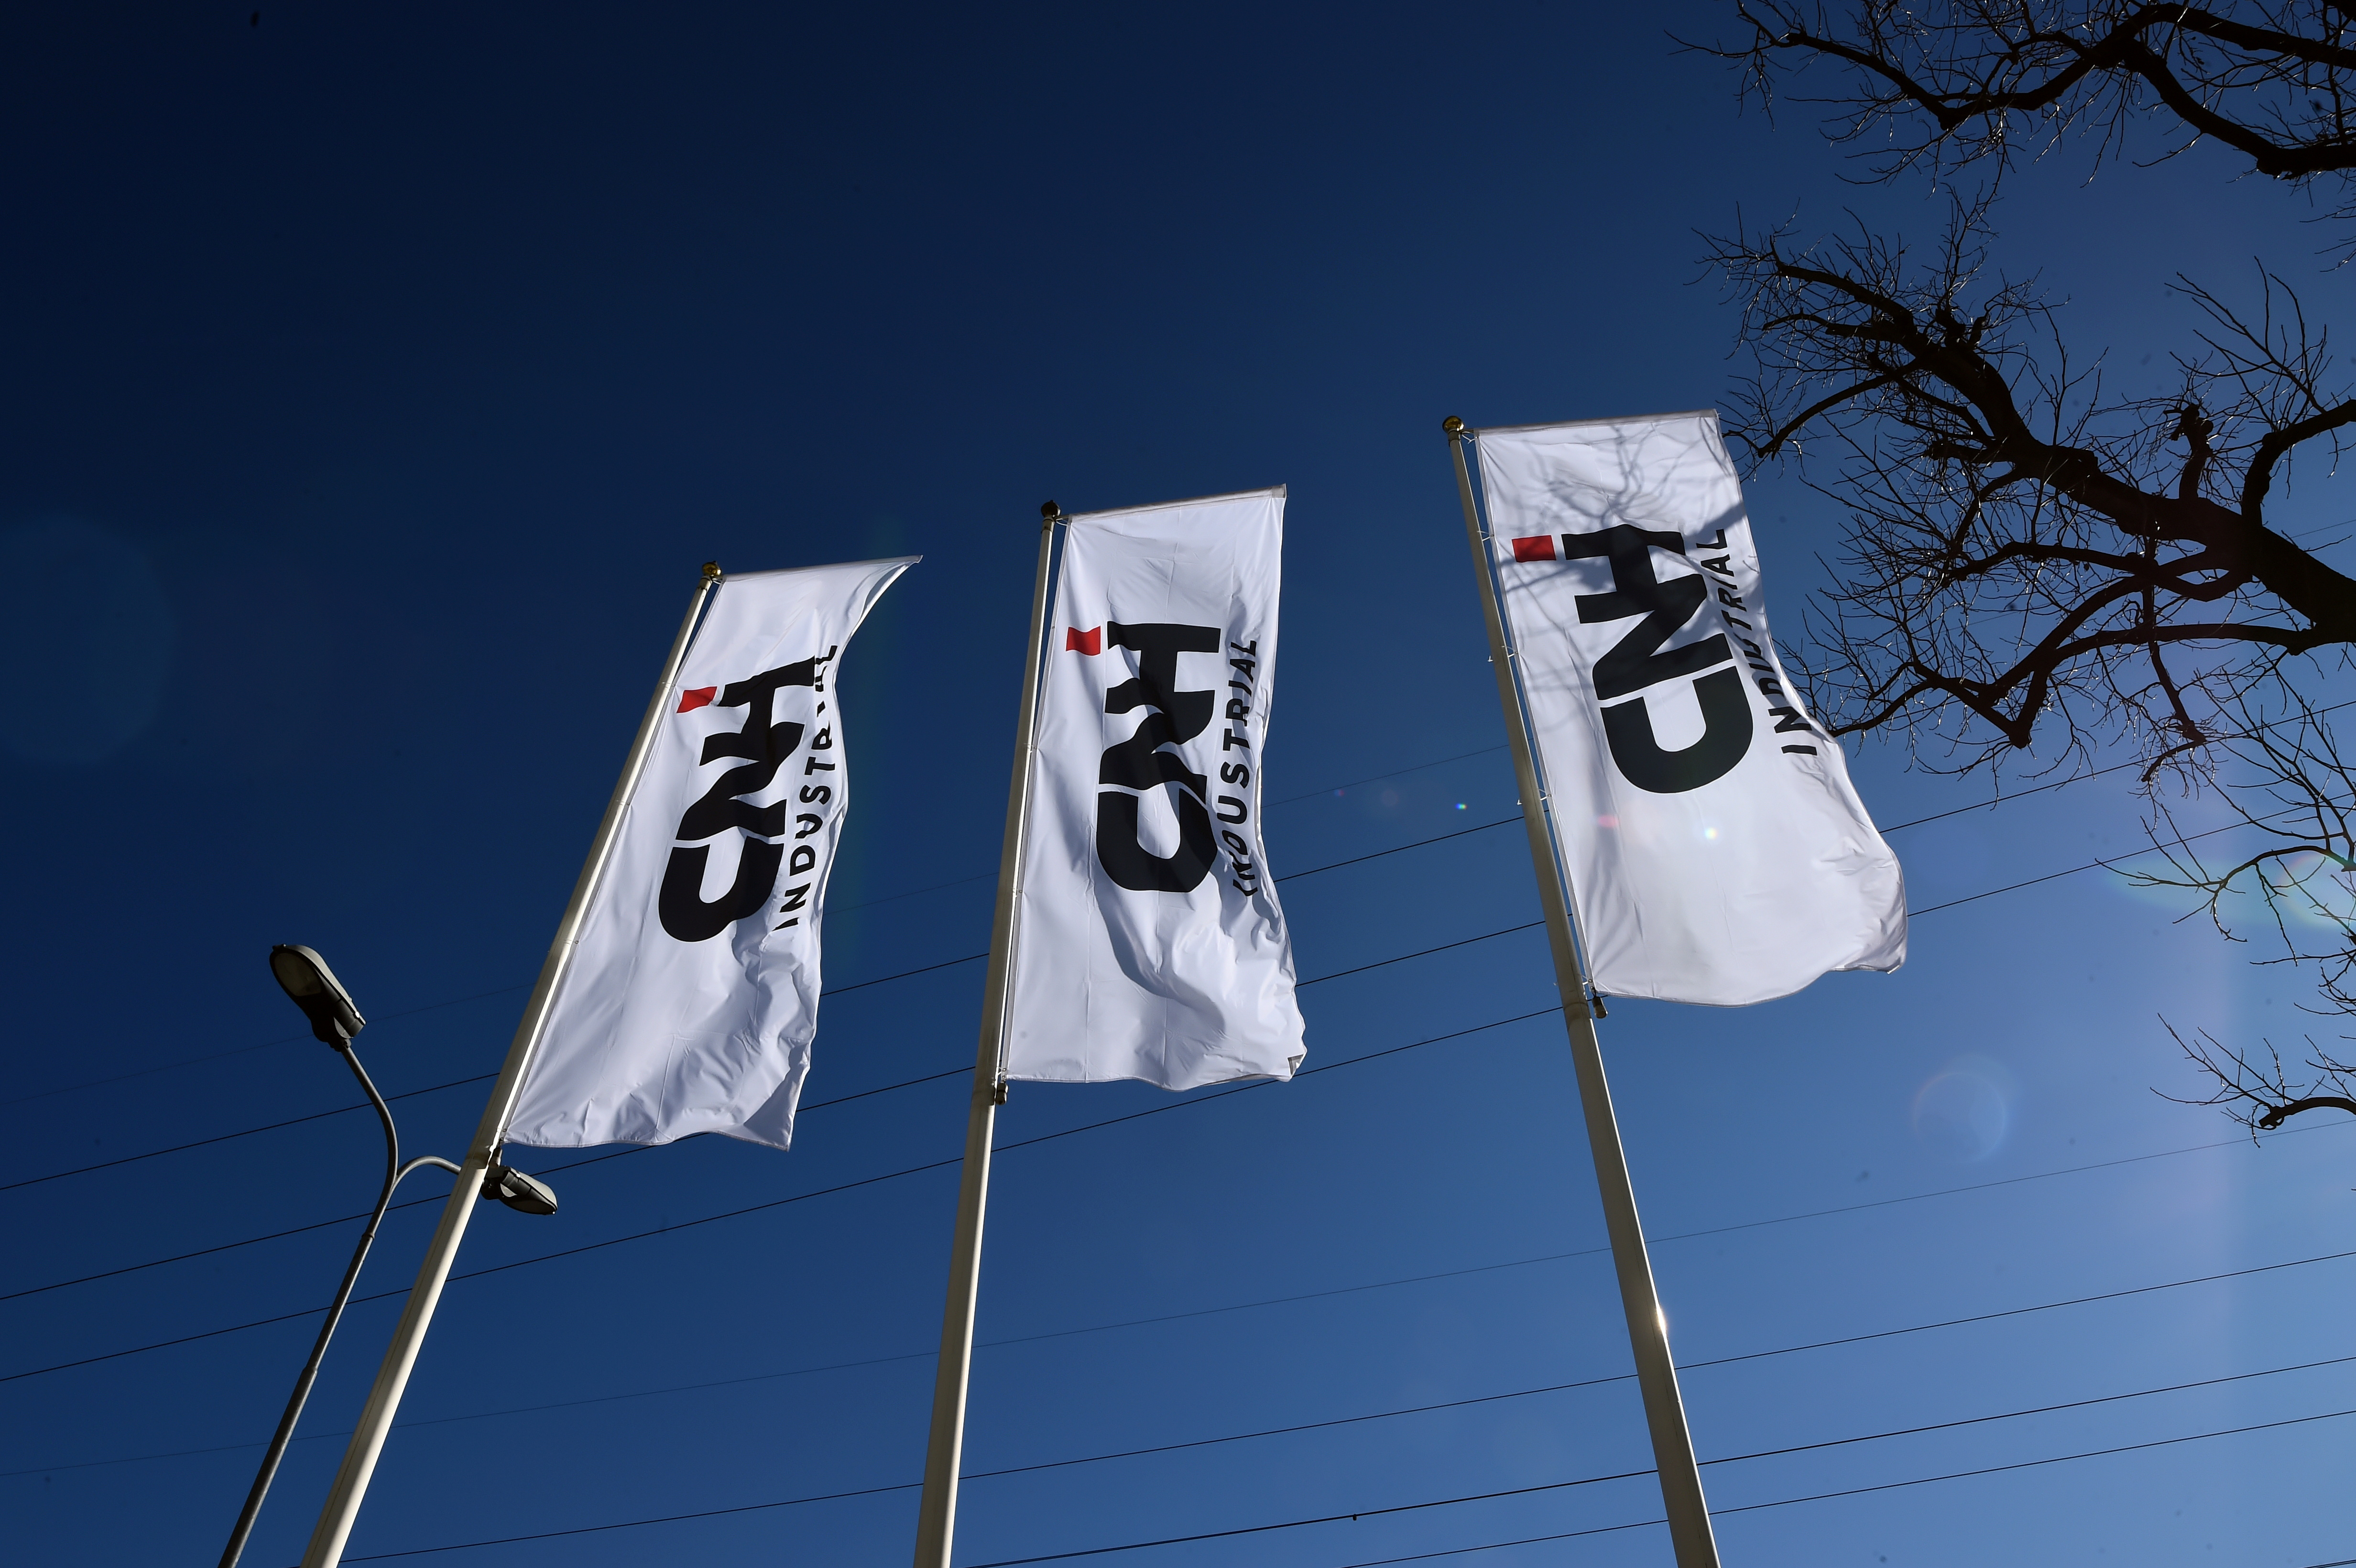 Flags with CNH Industrial logo are pictured outside CNH Industrial building in Turin, Italy, February 5, 2020. REUTERS/ Massimo Pinca/File Photo